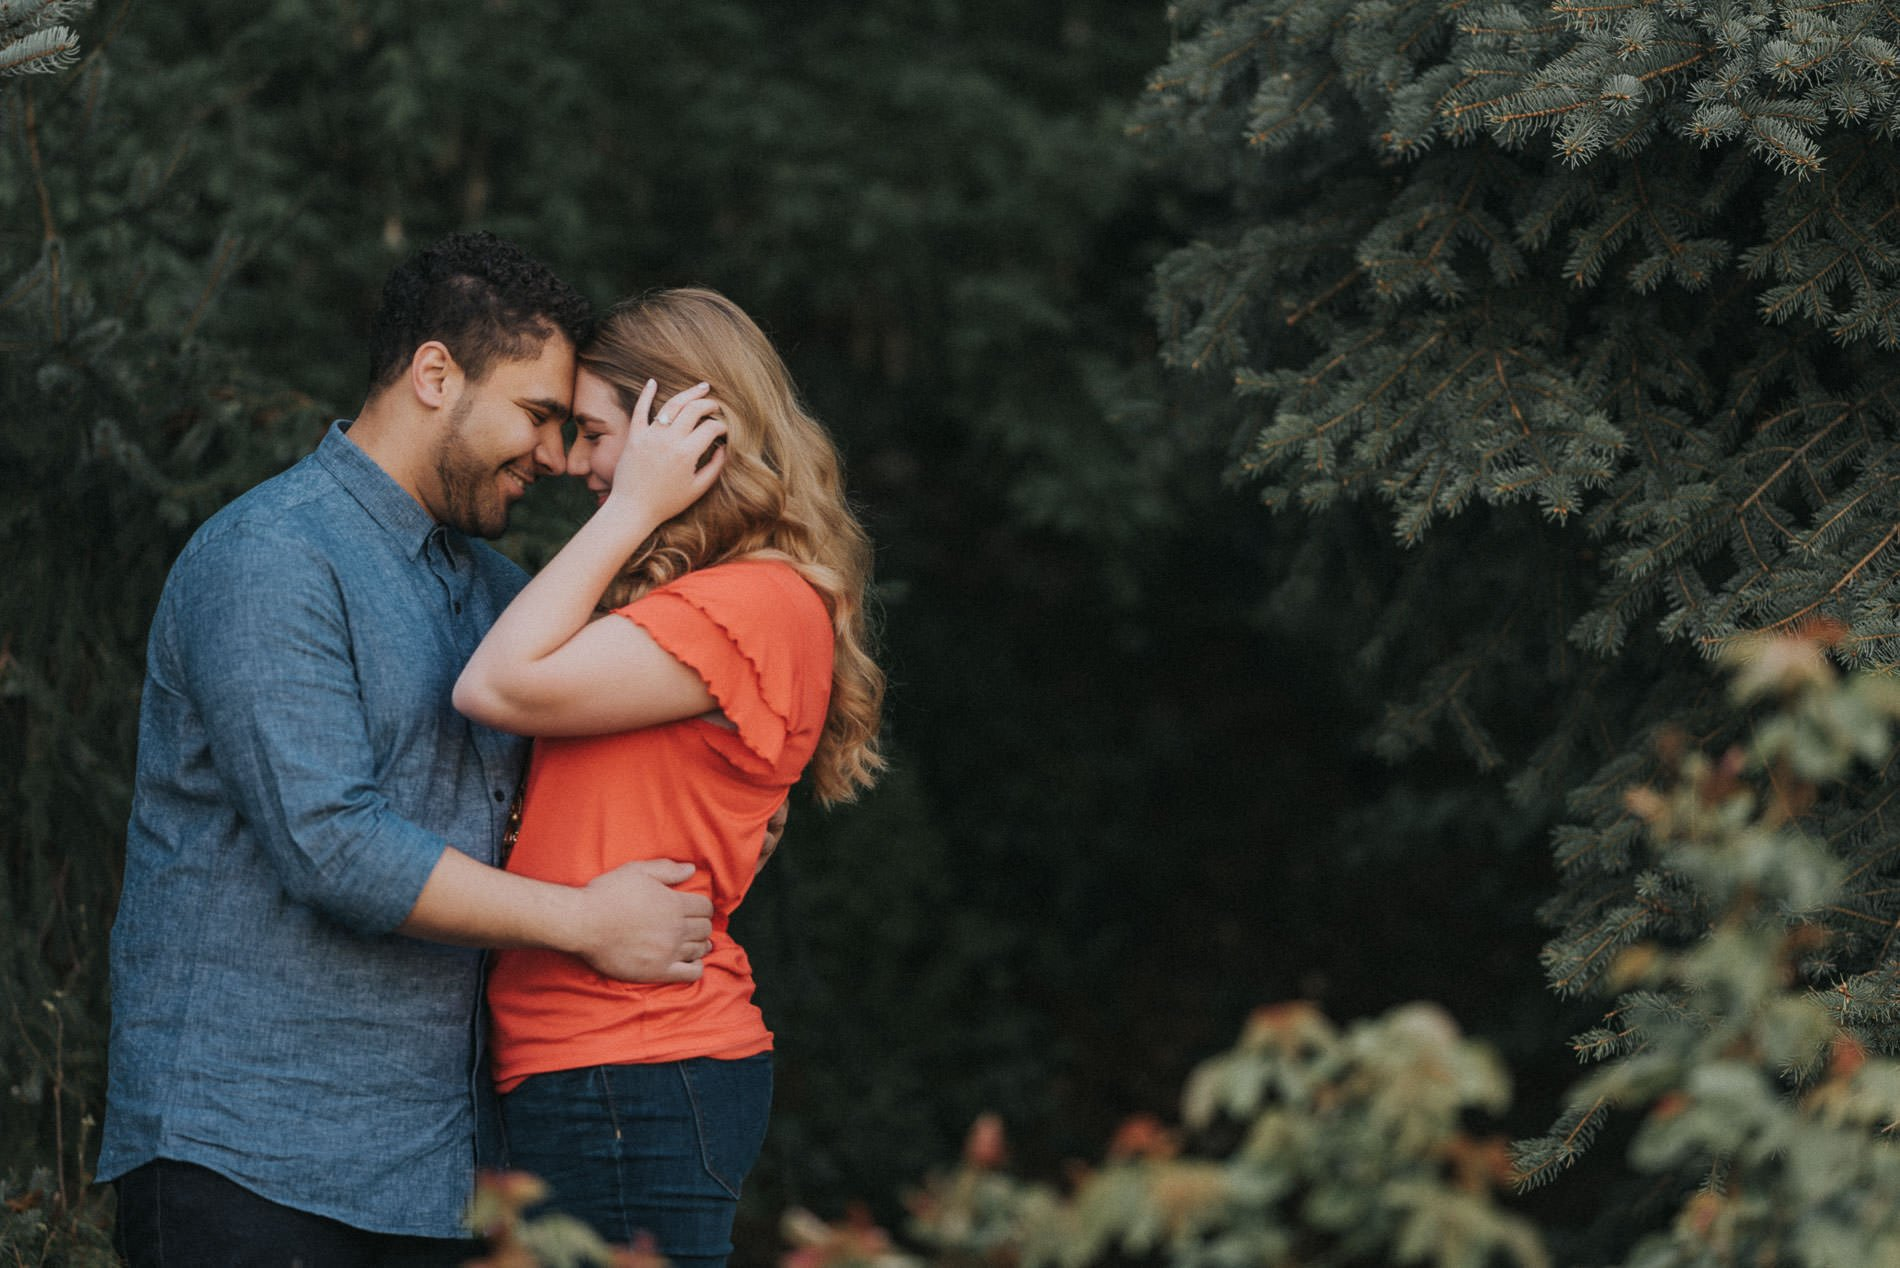 A couple snuggles pressing foreheads together in front of pine trees for Salt Lake City Utah photography.